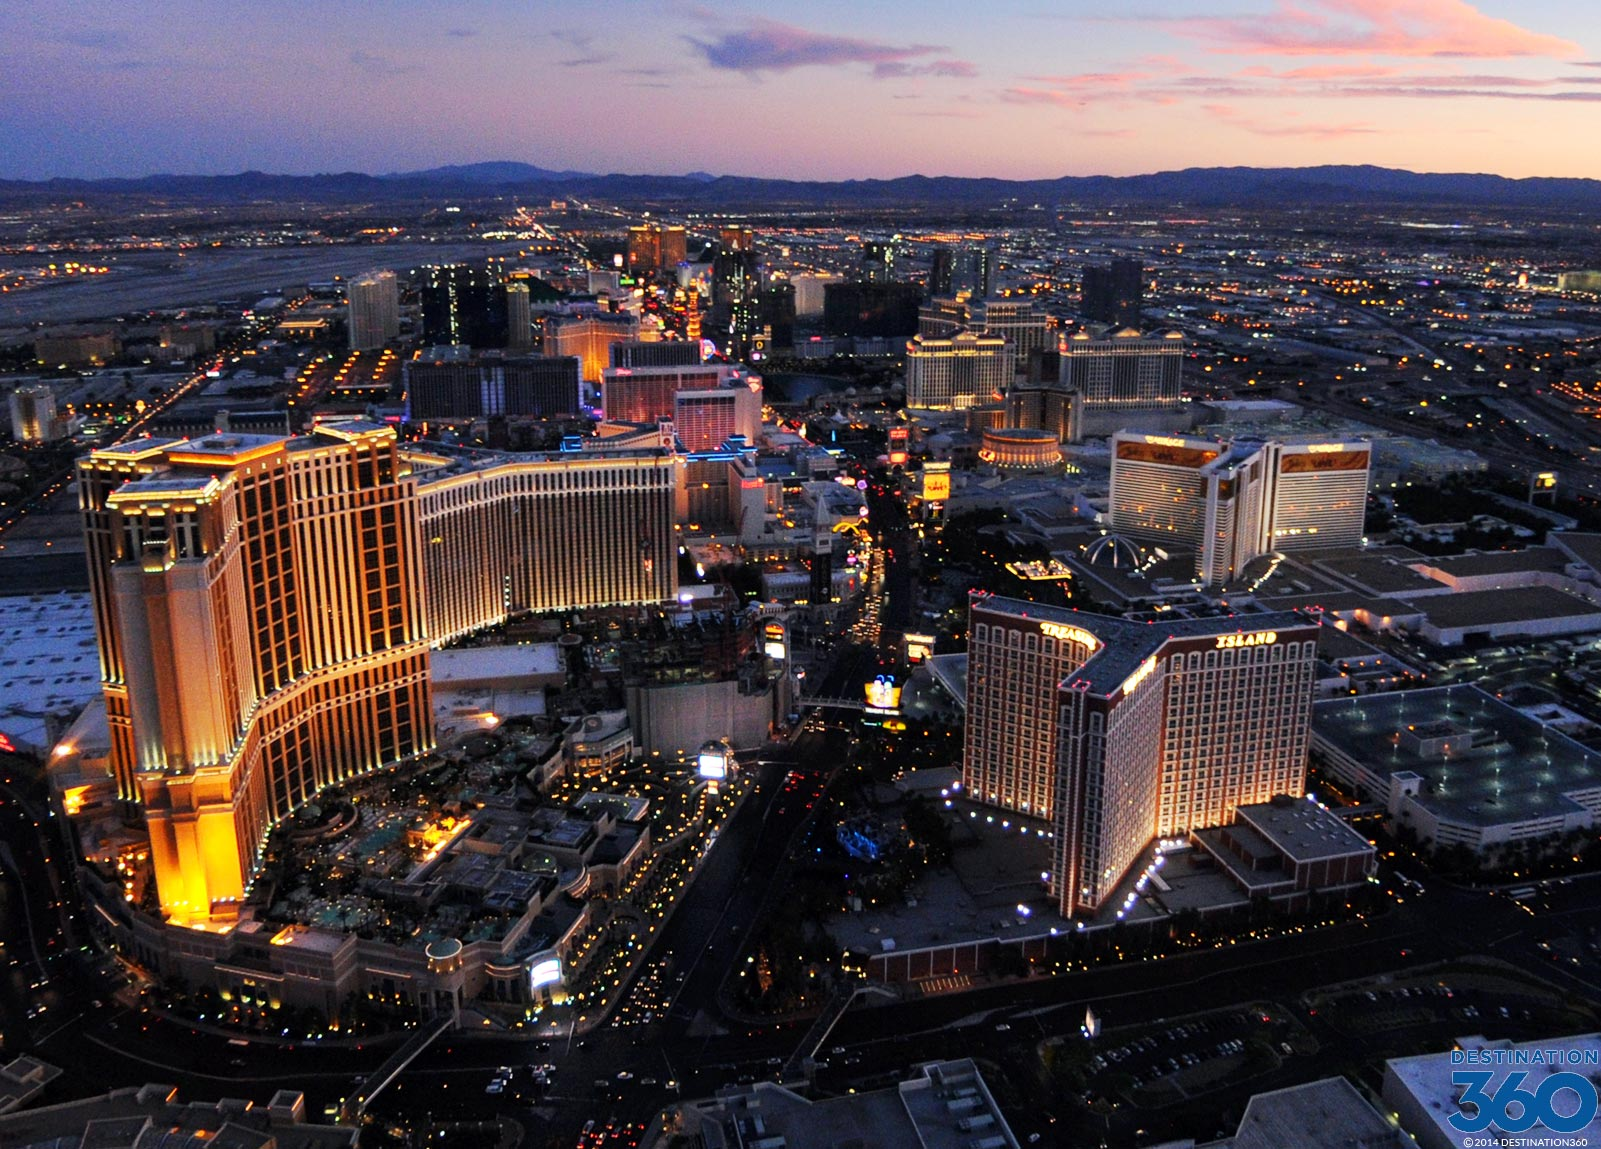 an analysis of the attitude of north americans on las vegas With 59 people dead and over 500 injured, last sunday's mass shooting in las vegas was the 'worst-ever' for the us, beating the previous record death toll set at an orlando gay nightclub all the way back in june 2016.